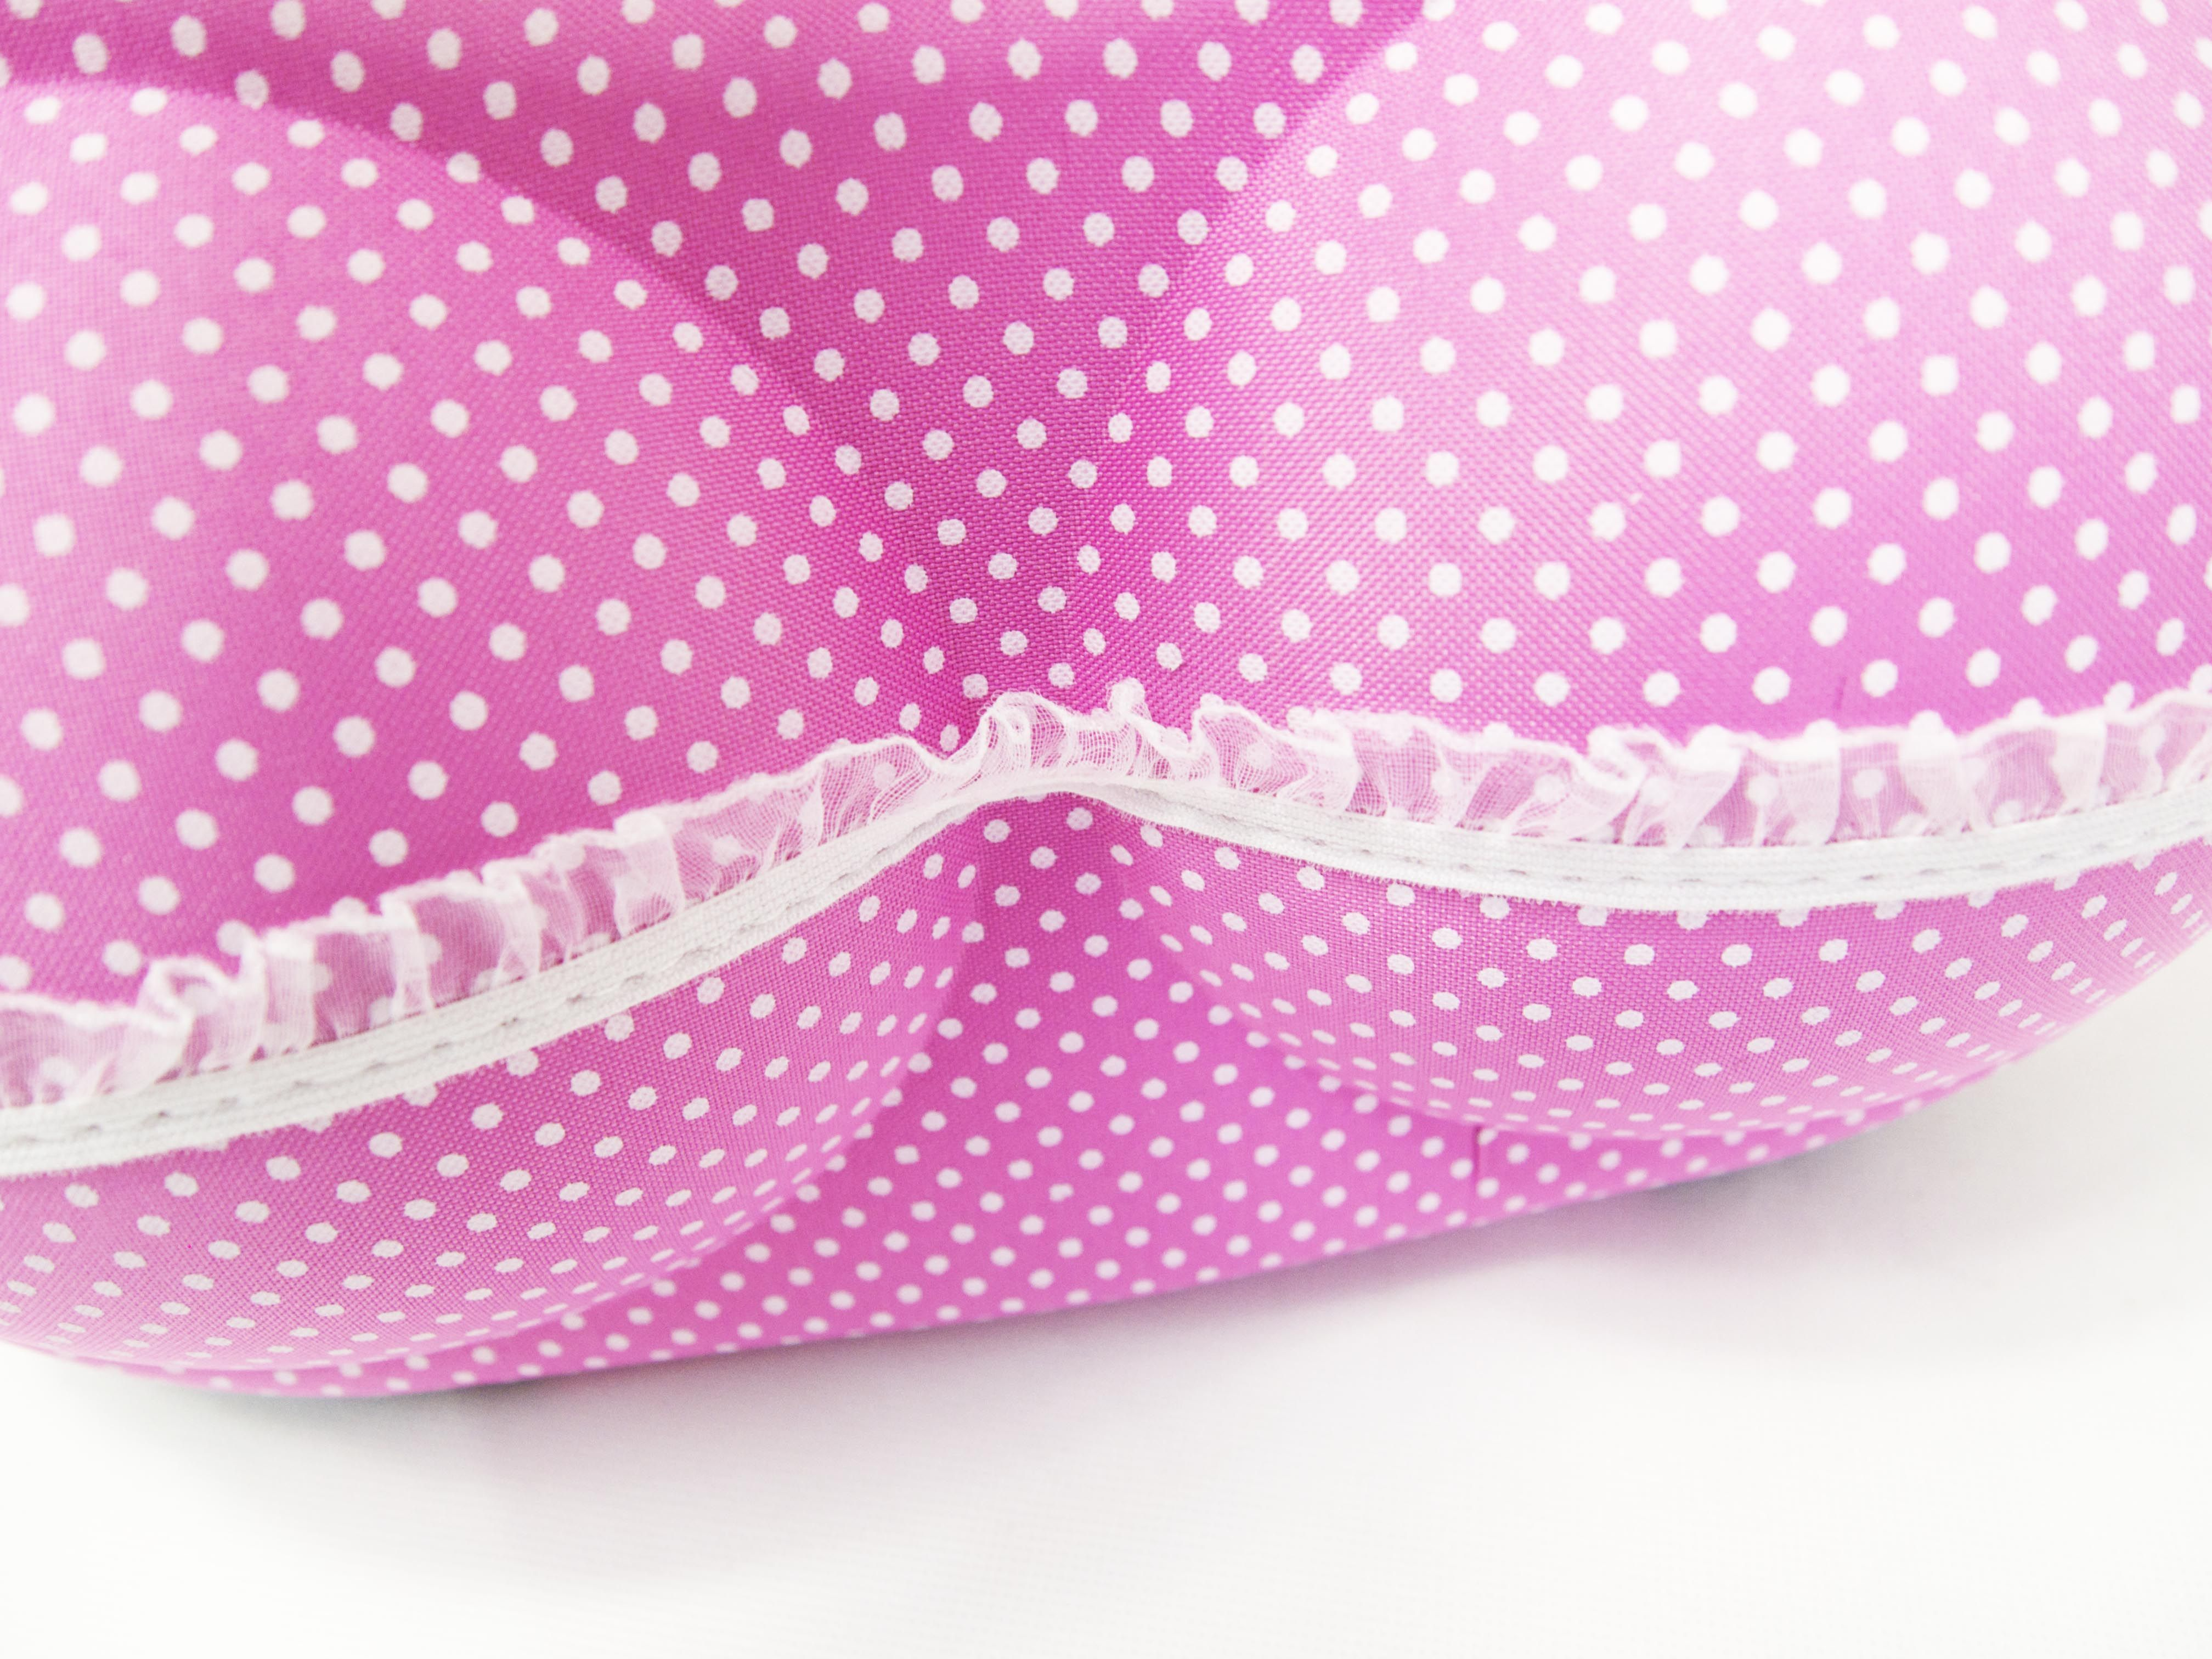 My Bra Bag Regular Pink 03